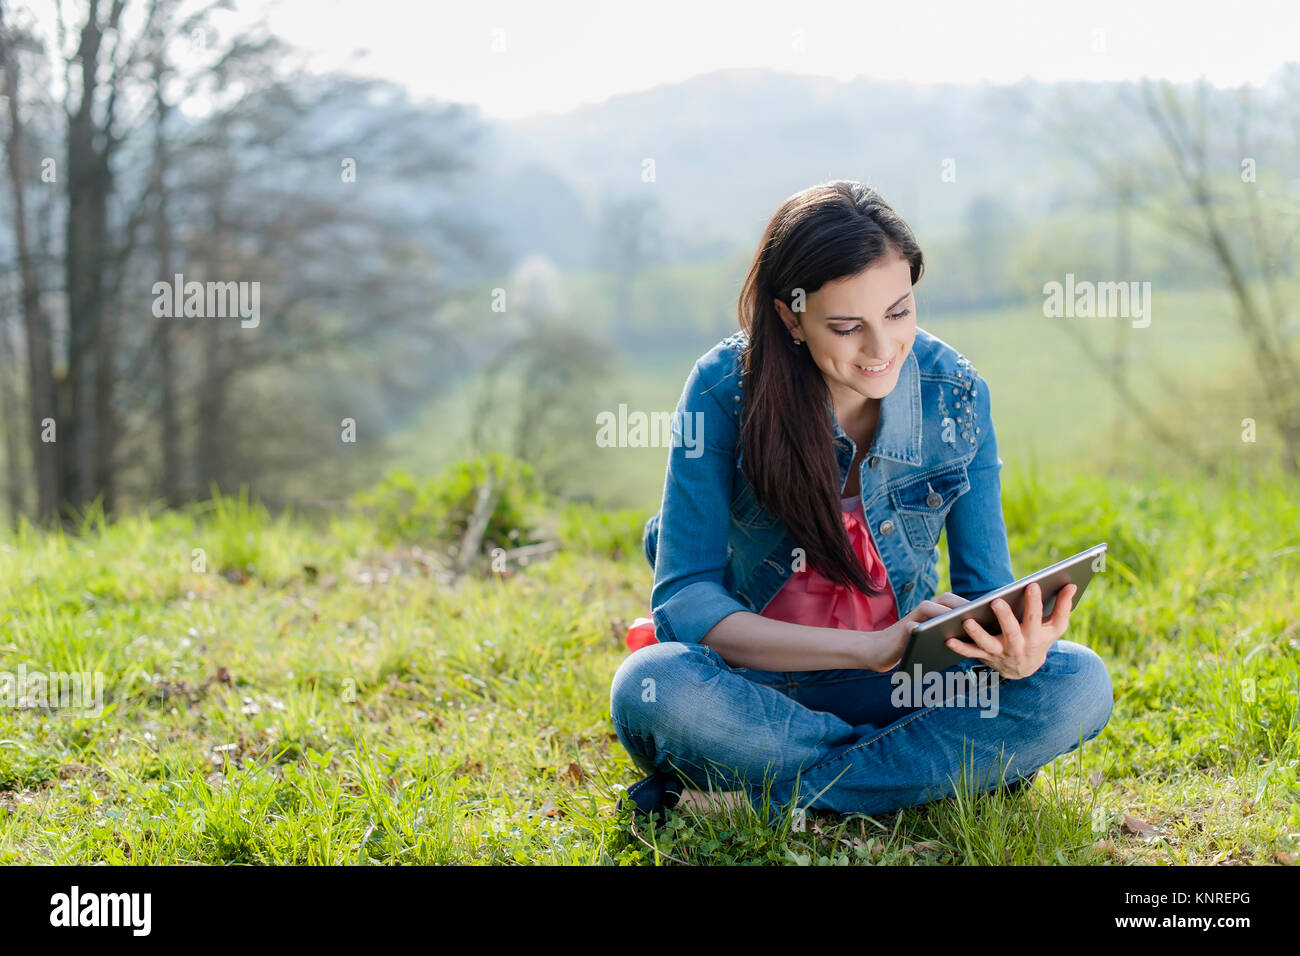 Junge Frau mit IPad sitzt in der Wiese - woman with Ipad - Stock Image